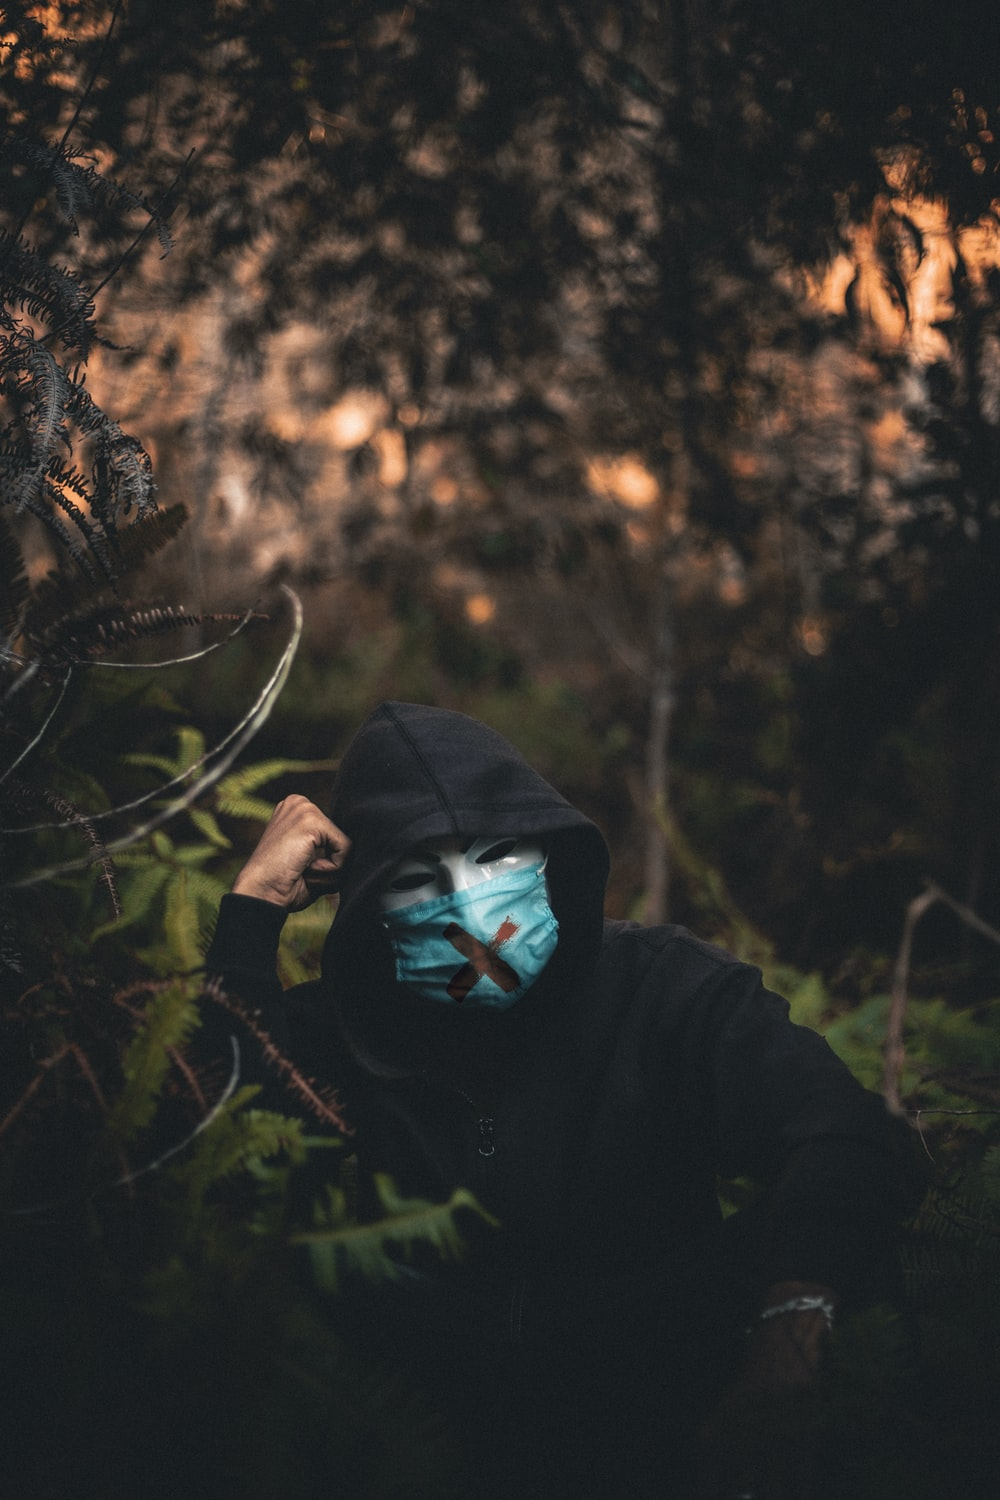 person in black hoodie standing in forest during daytime